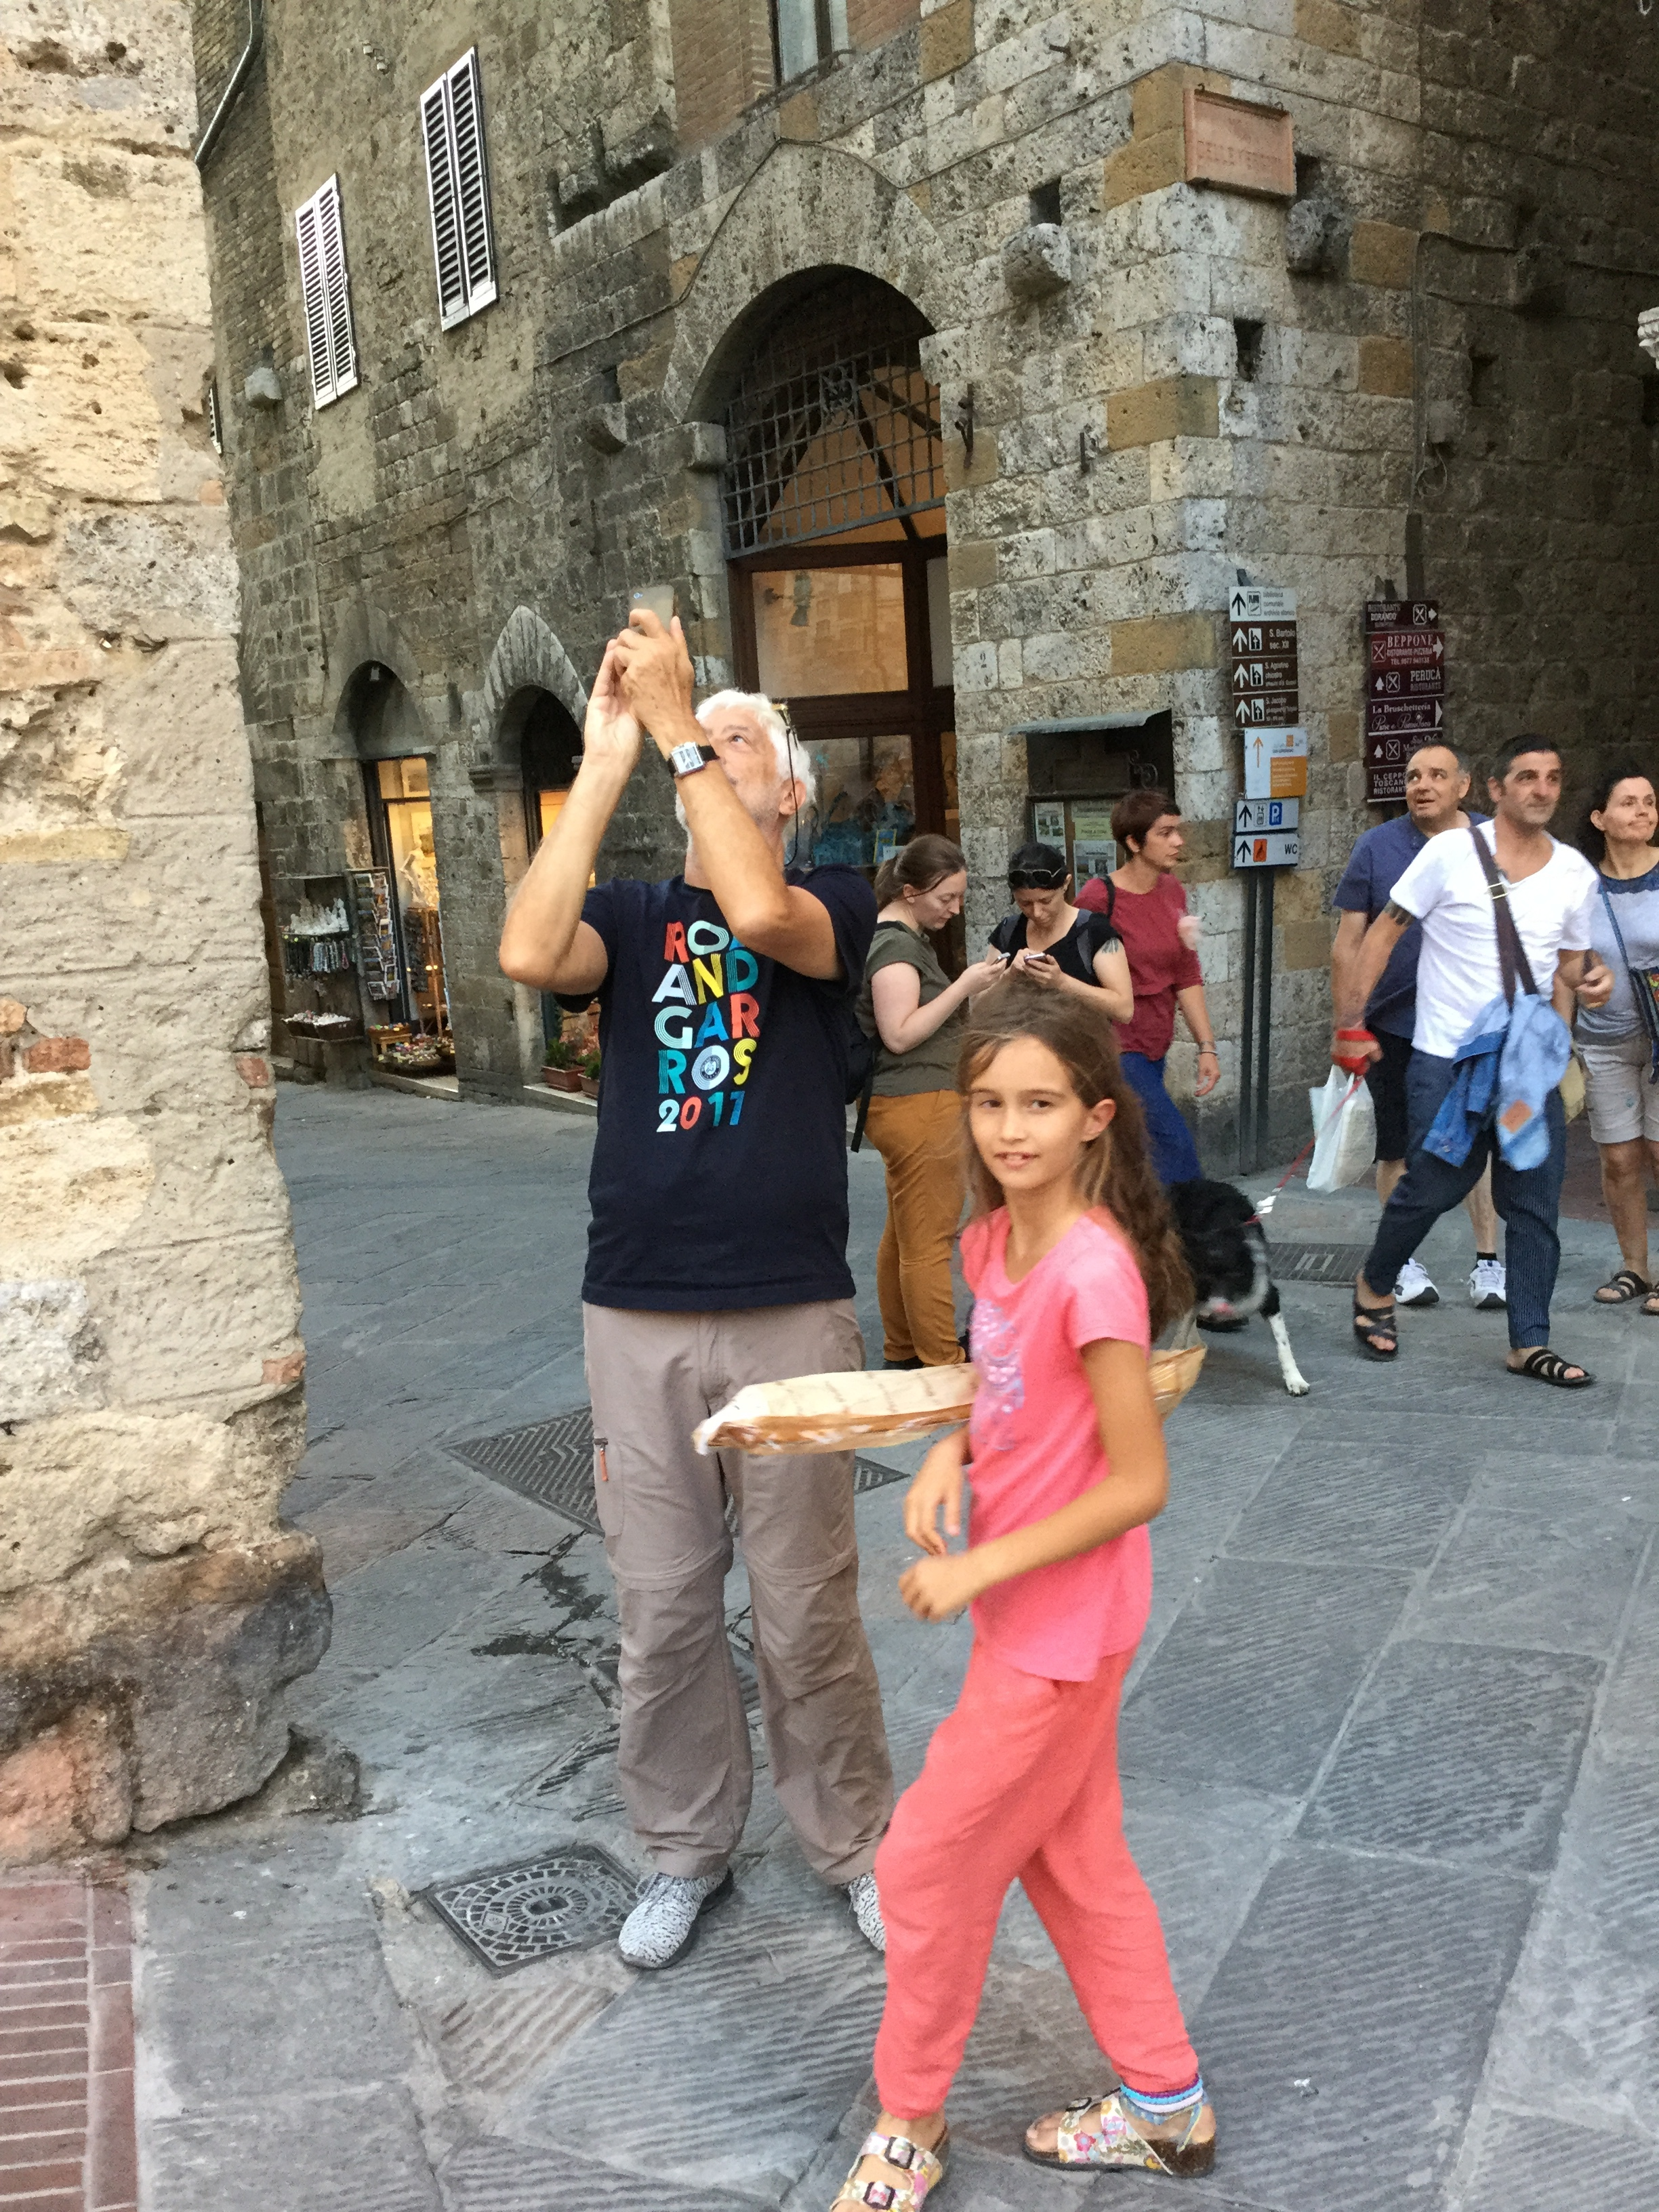 This is what tourists in San Gimignano look like: bending backwards and looking up to photograph a tower!